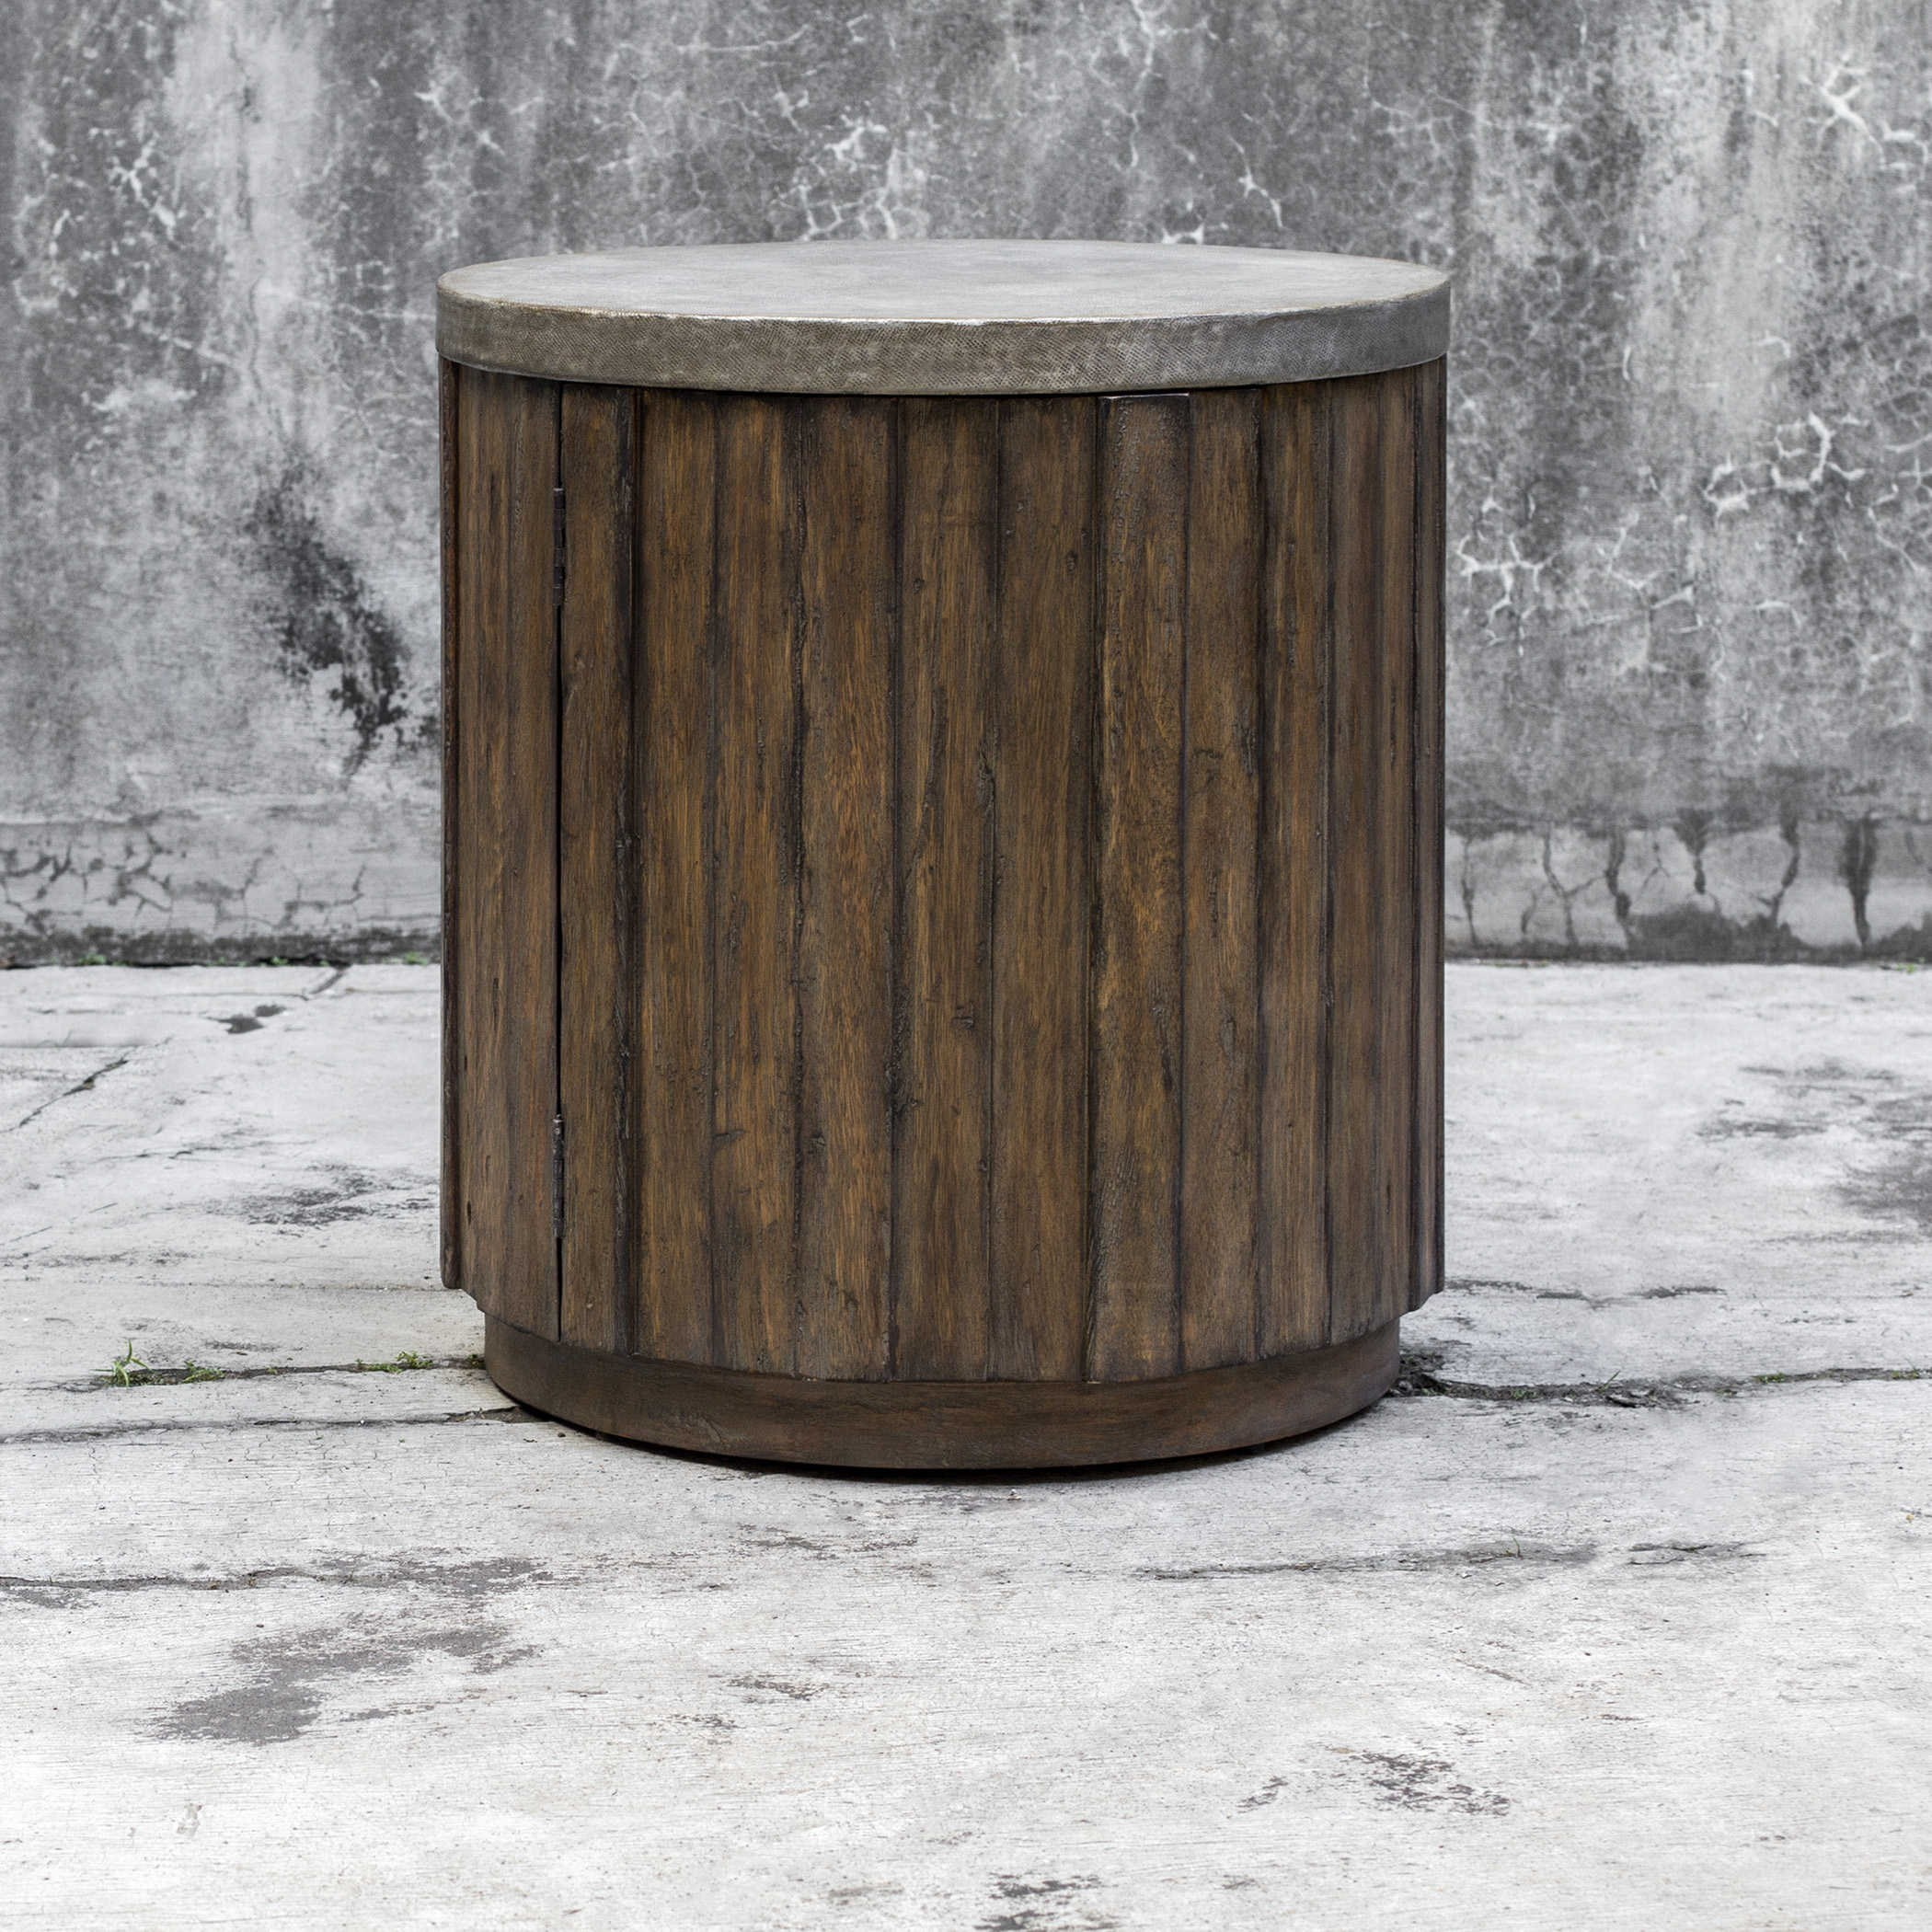 wooden drum end table tops accent furniture avani mango wood uttermost maxfield decorative metal legs thai folding patio round toronto high top bistro butcher block island dark